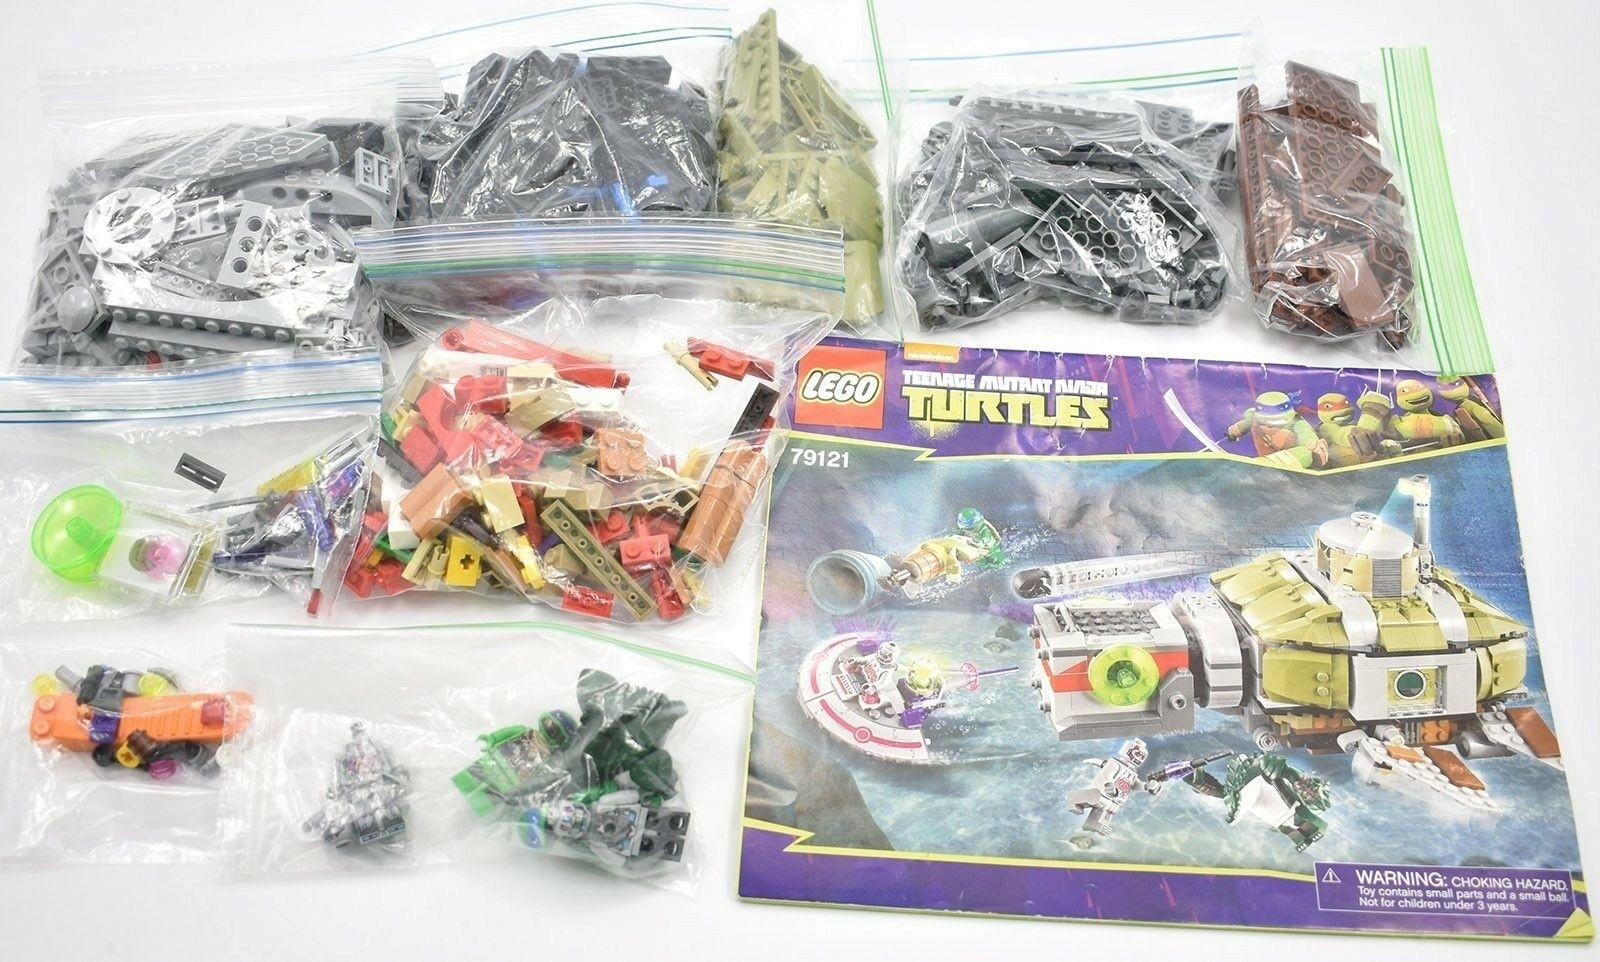 Lego TMNT  Turtle Sub Undersea Chase  TMNT 79121 100% Complete With Instructions 2014 51aec2